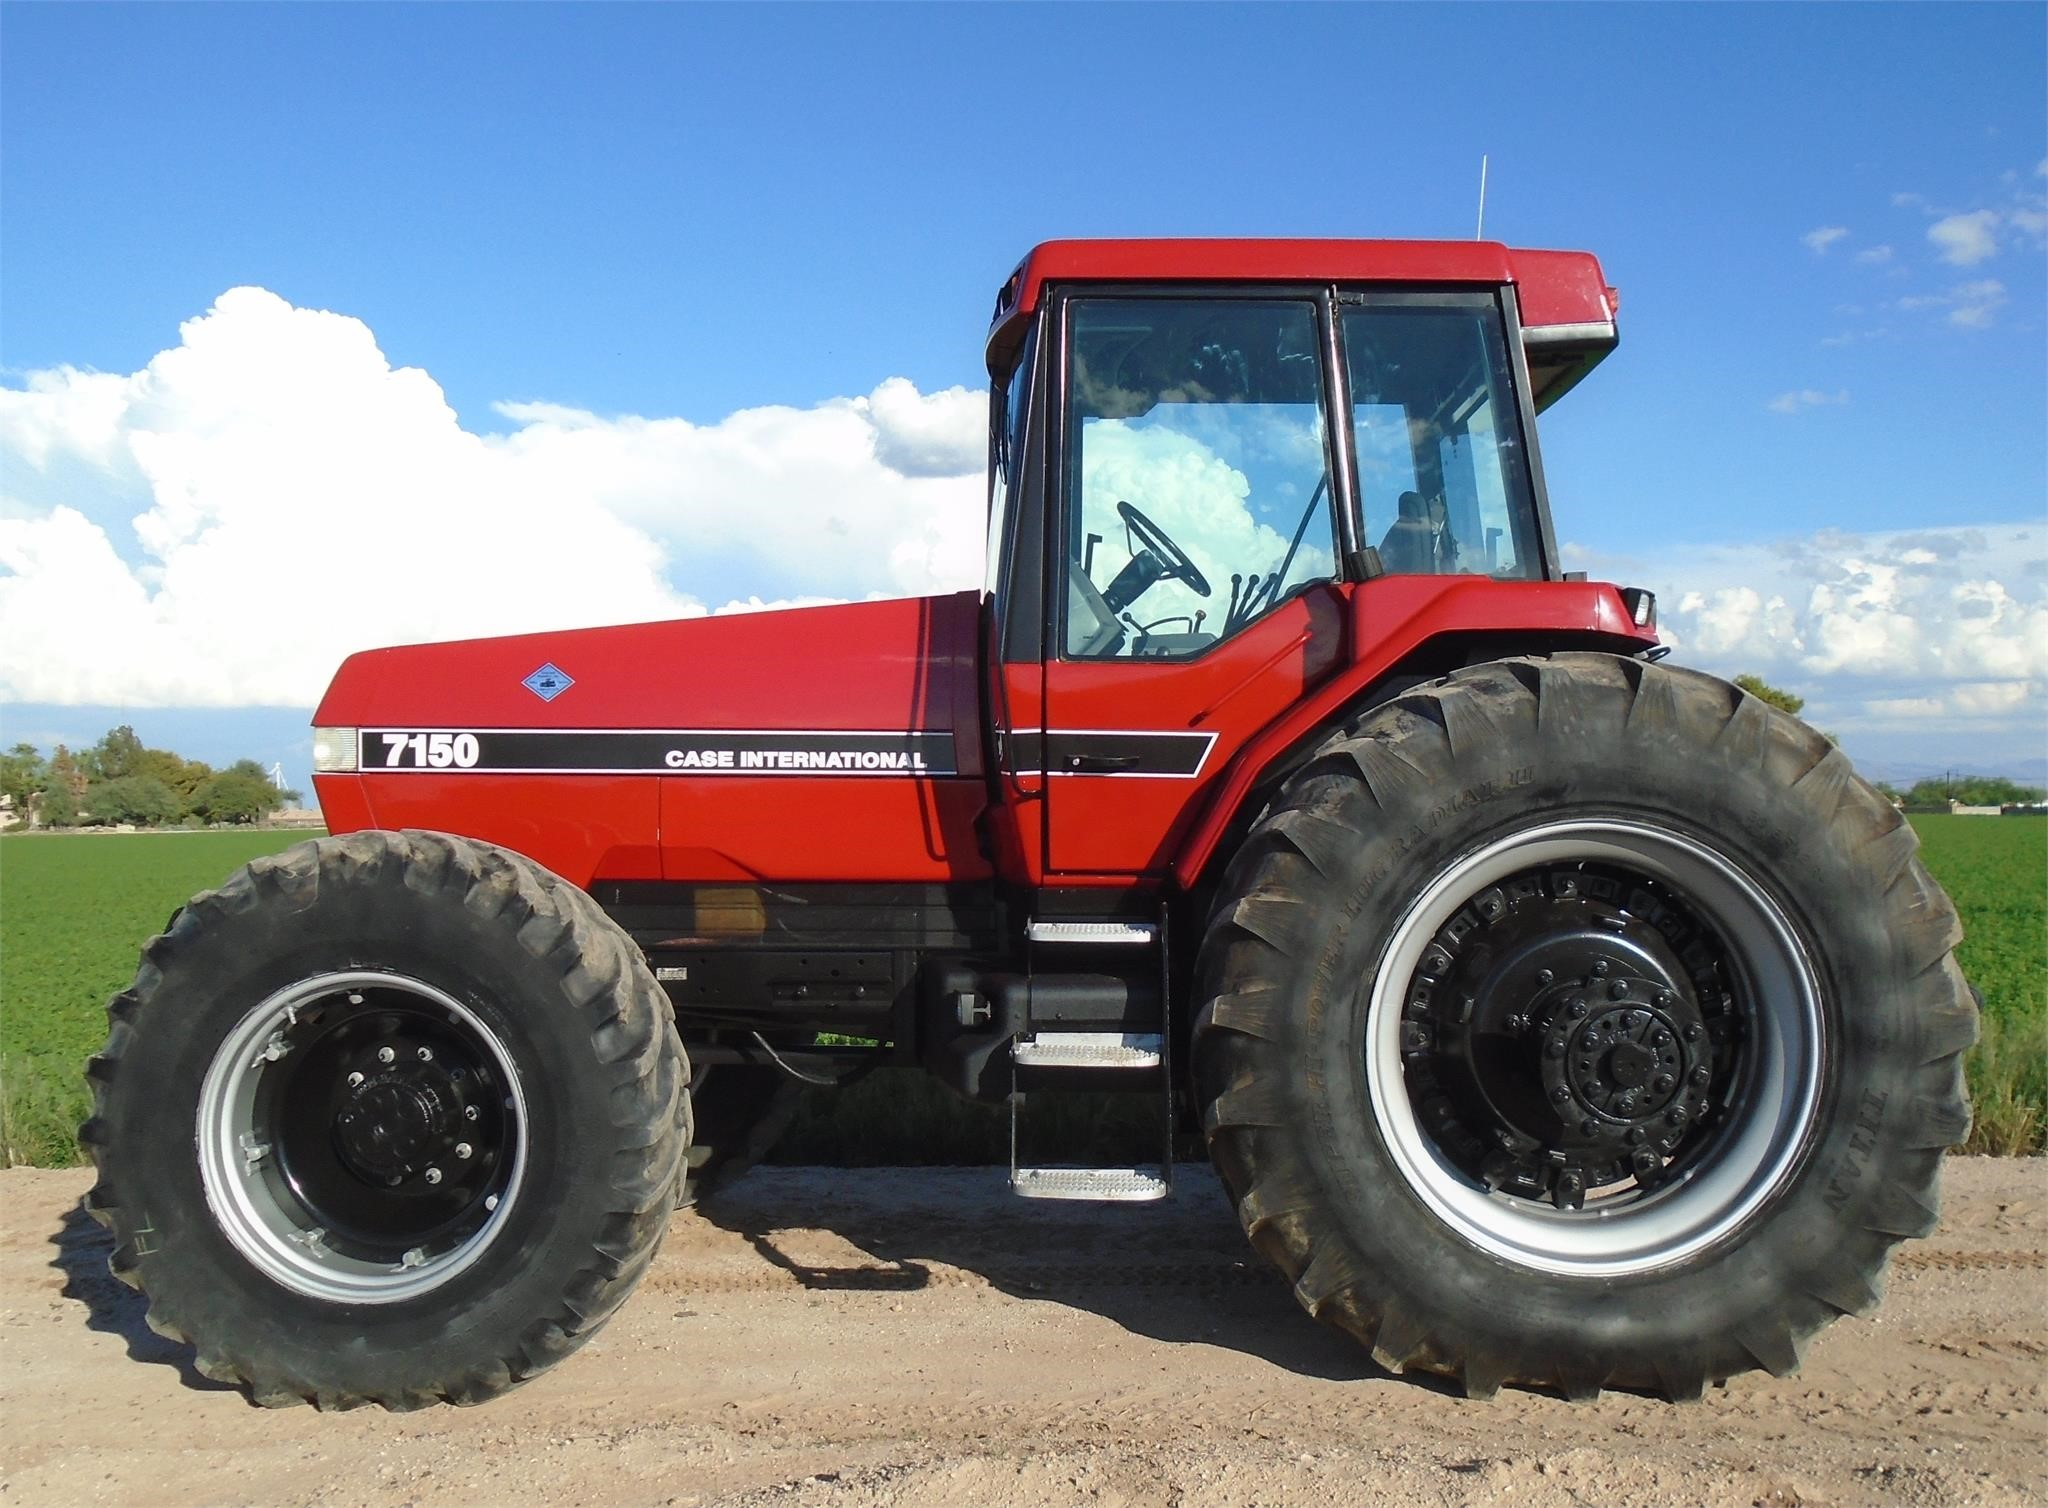 1993 Case IH 7150 Tractor